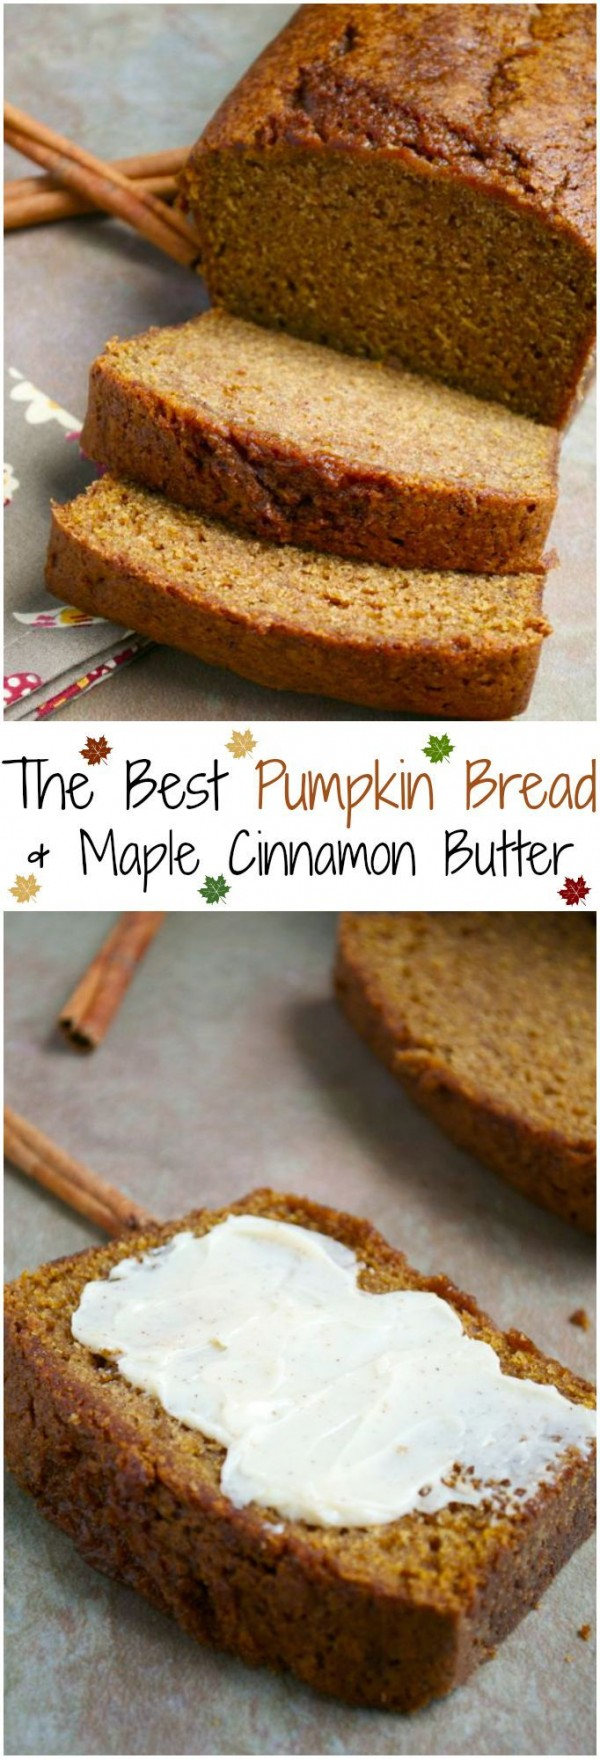 Get the recipe Pumpkin Bread with Maple Cinnamon Butter @recipes_to_go